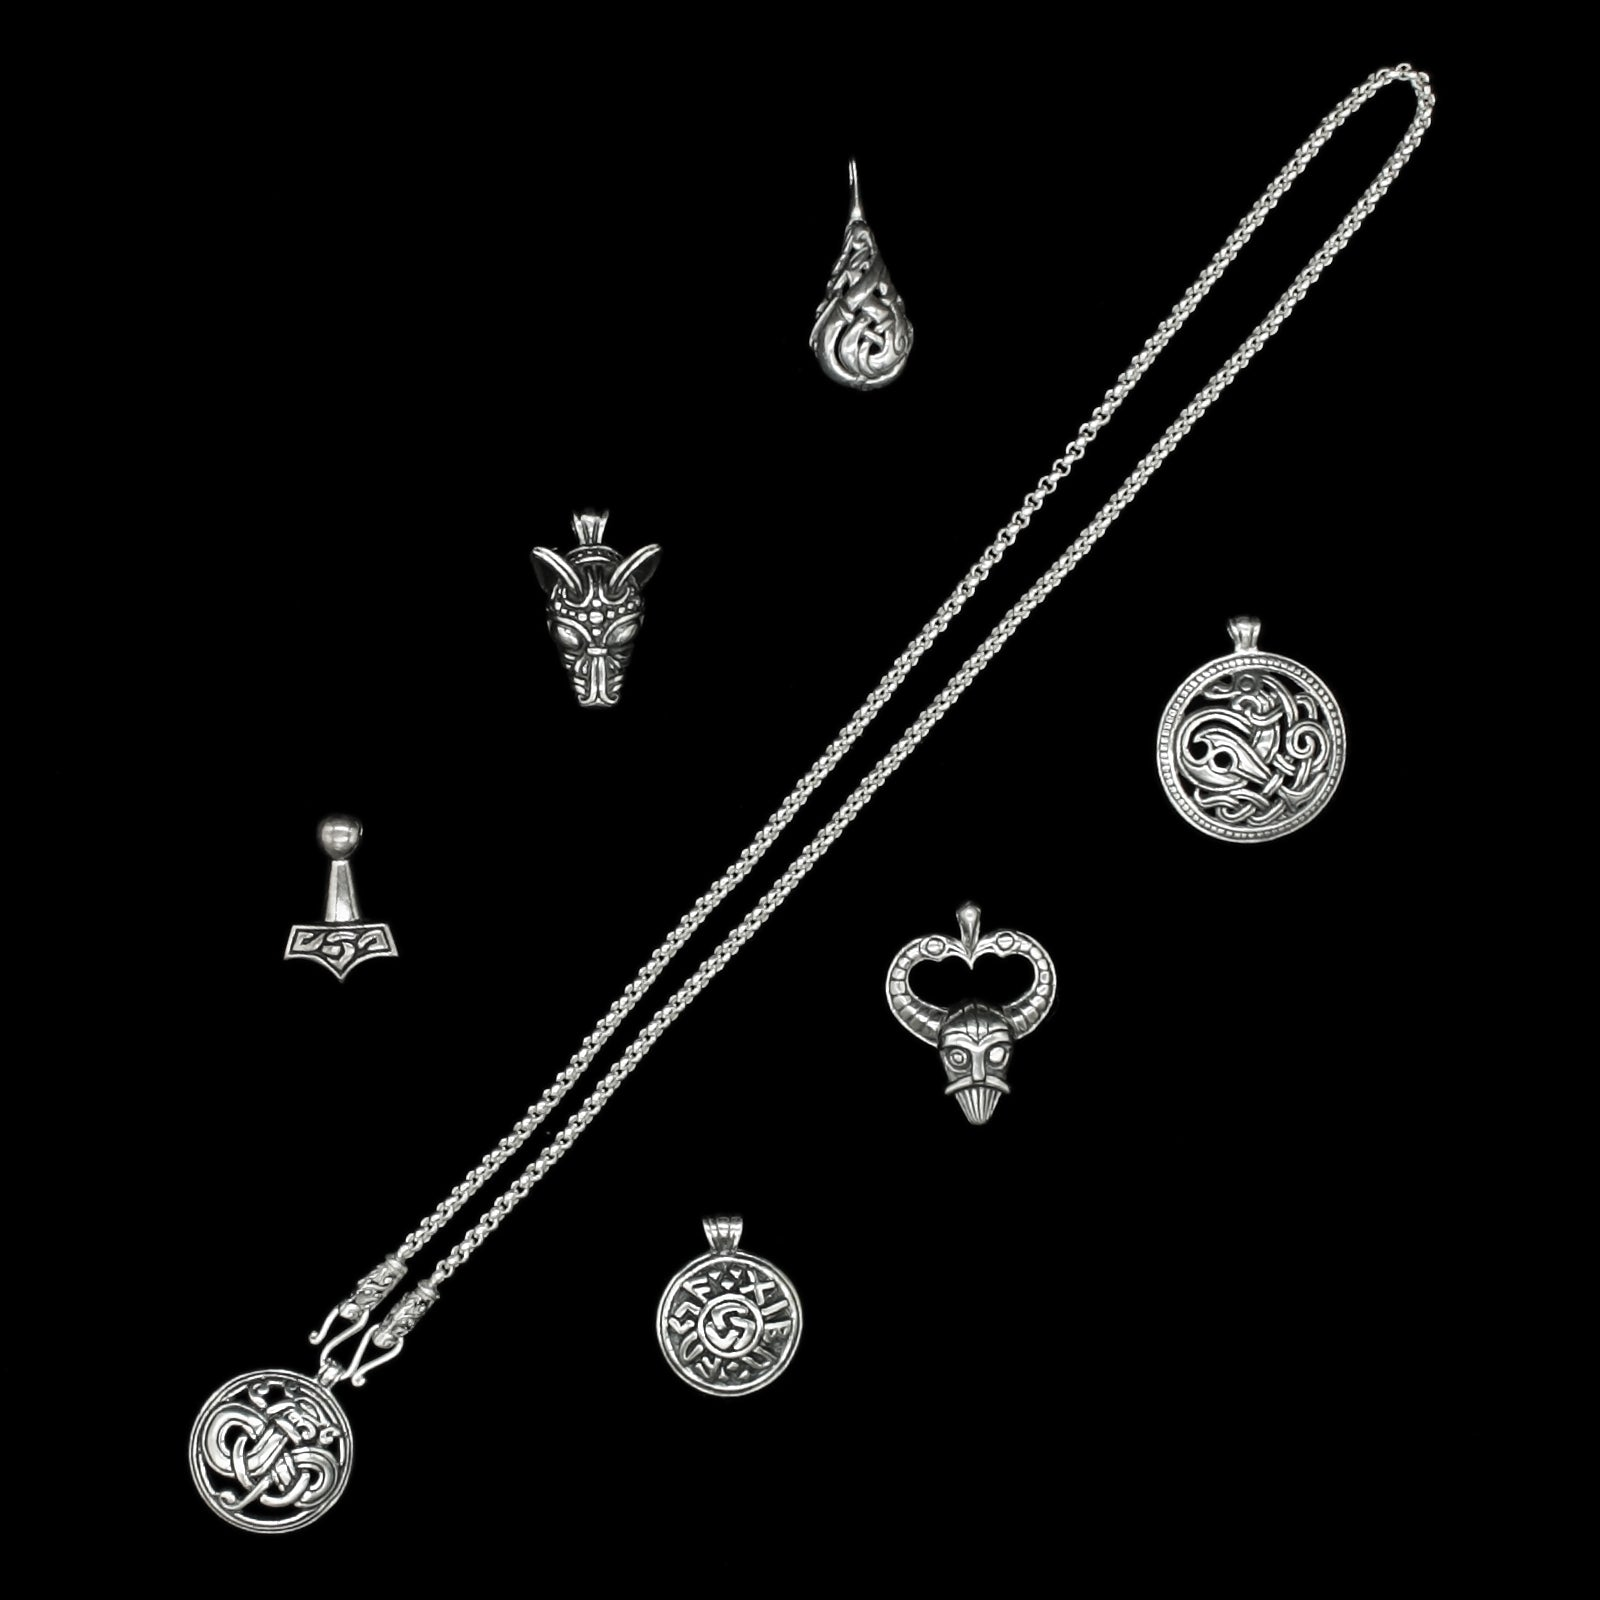 Slim Silver Anchor Chain Pendant Necklace with Gotland Dragon Heads and Choice of Silver Pendants